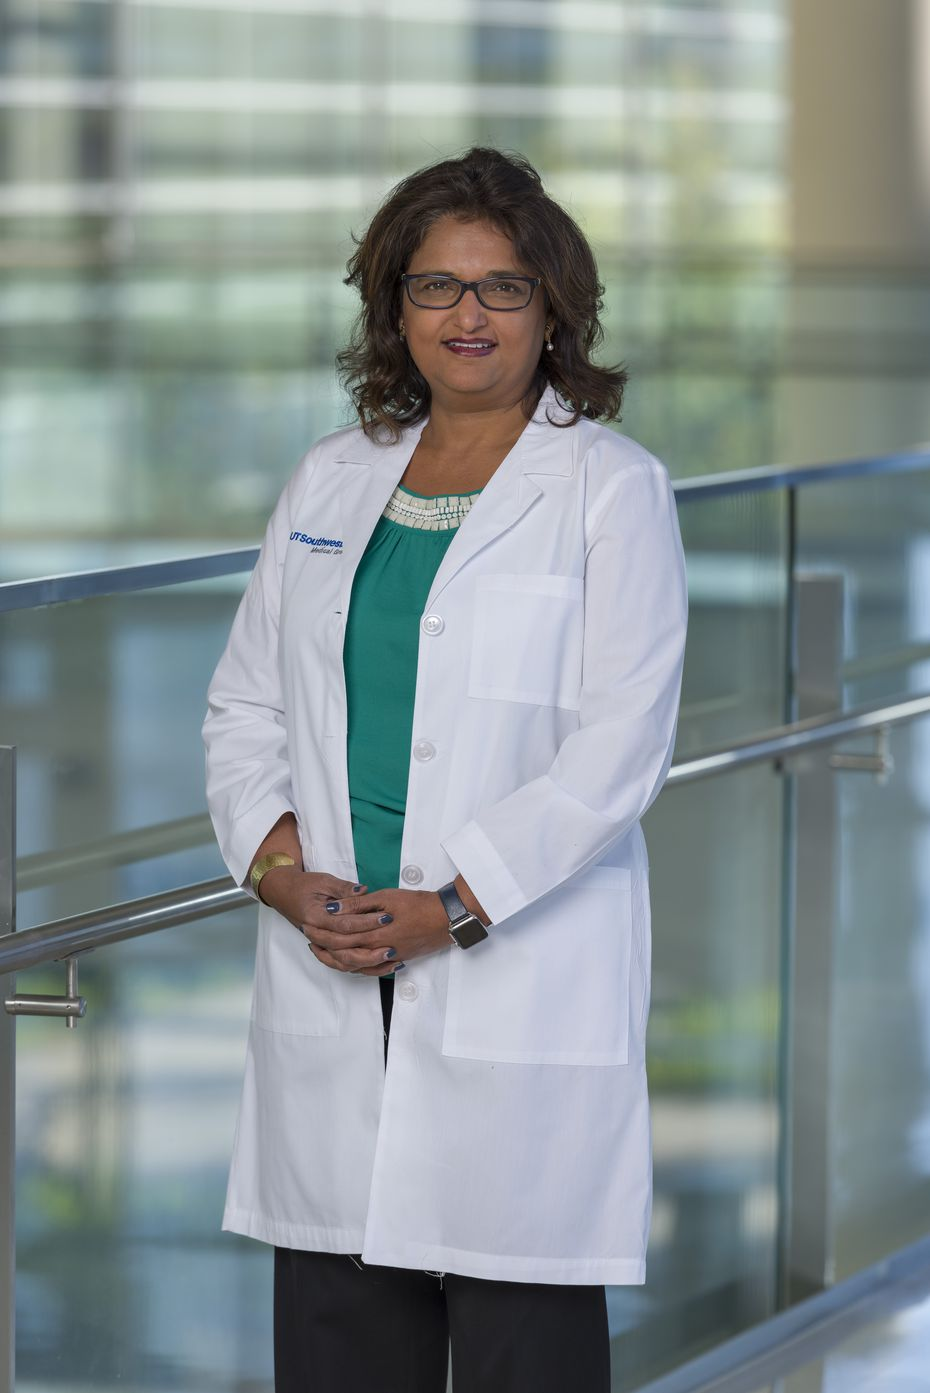 Dr. Mamta Jain, a professor of internal medicine at UT Southwestern Medical Center in Dallas